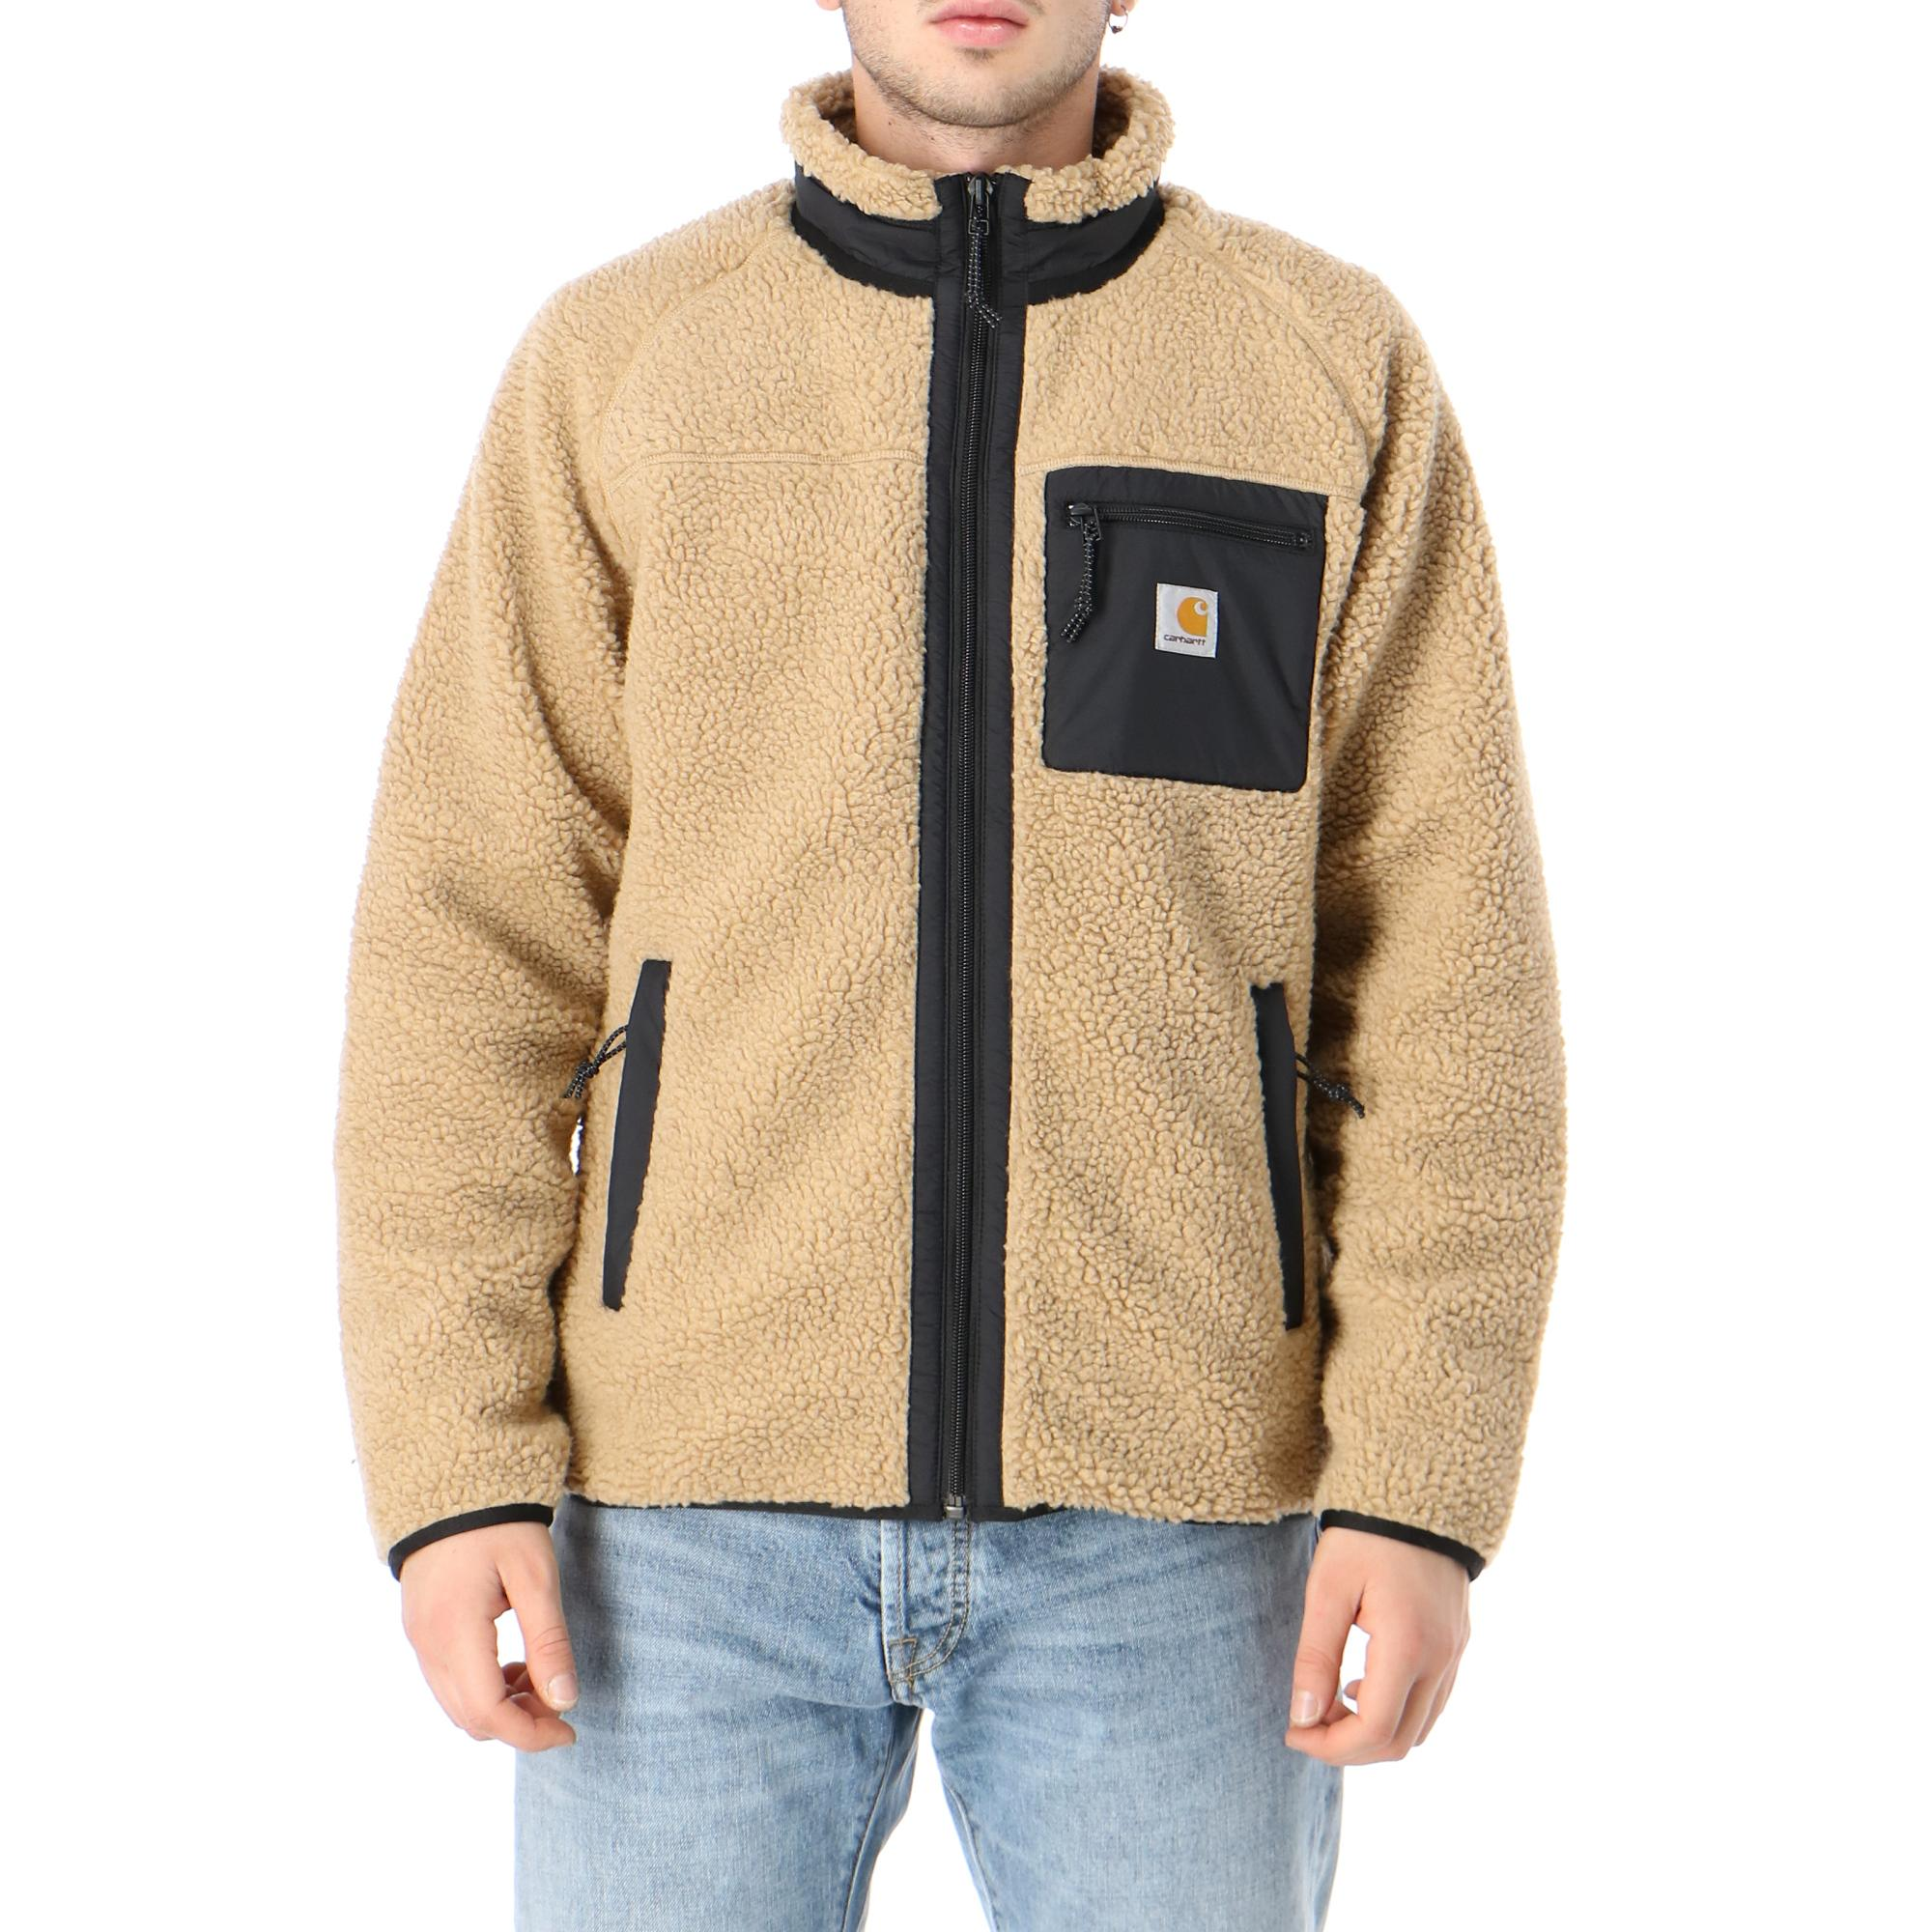 Carhartt Prentis Liner Dusty h brown